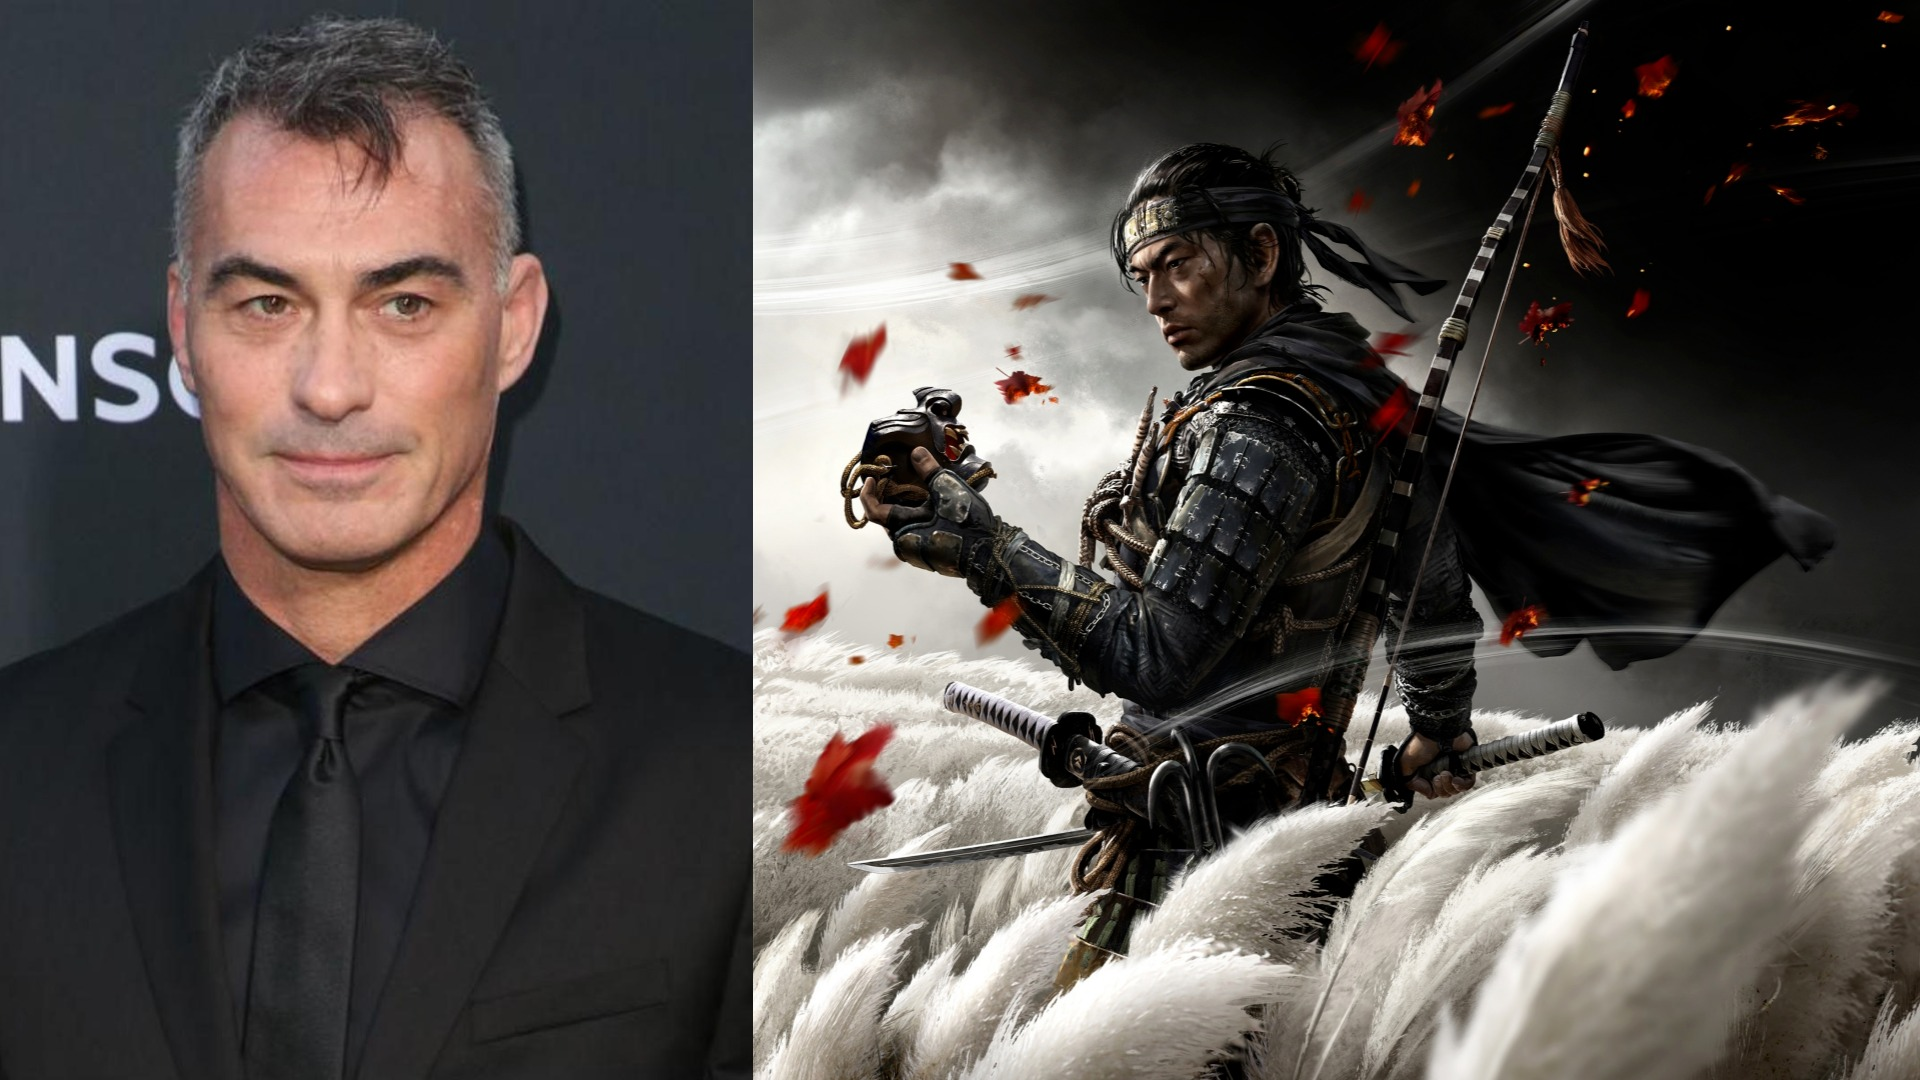 Deadline is exclusively reporting that Sony Pictures and PlayStation Productions are developing a film adaptation of the popular 2020 video game Ghost of Tsushima, with Chad Stahelski attached to direct.